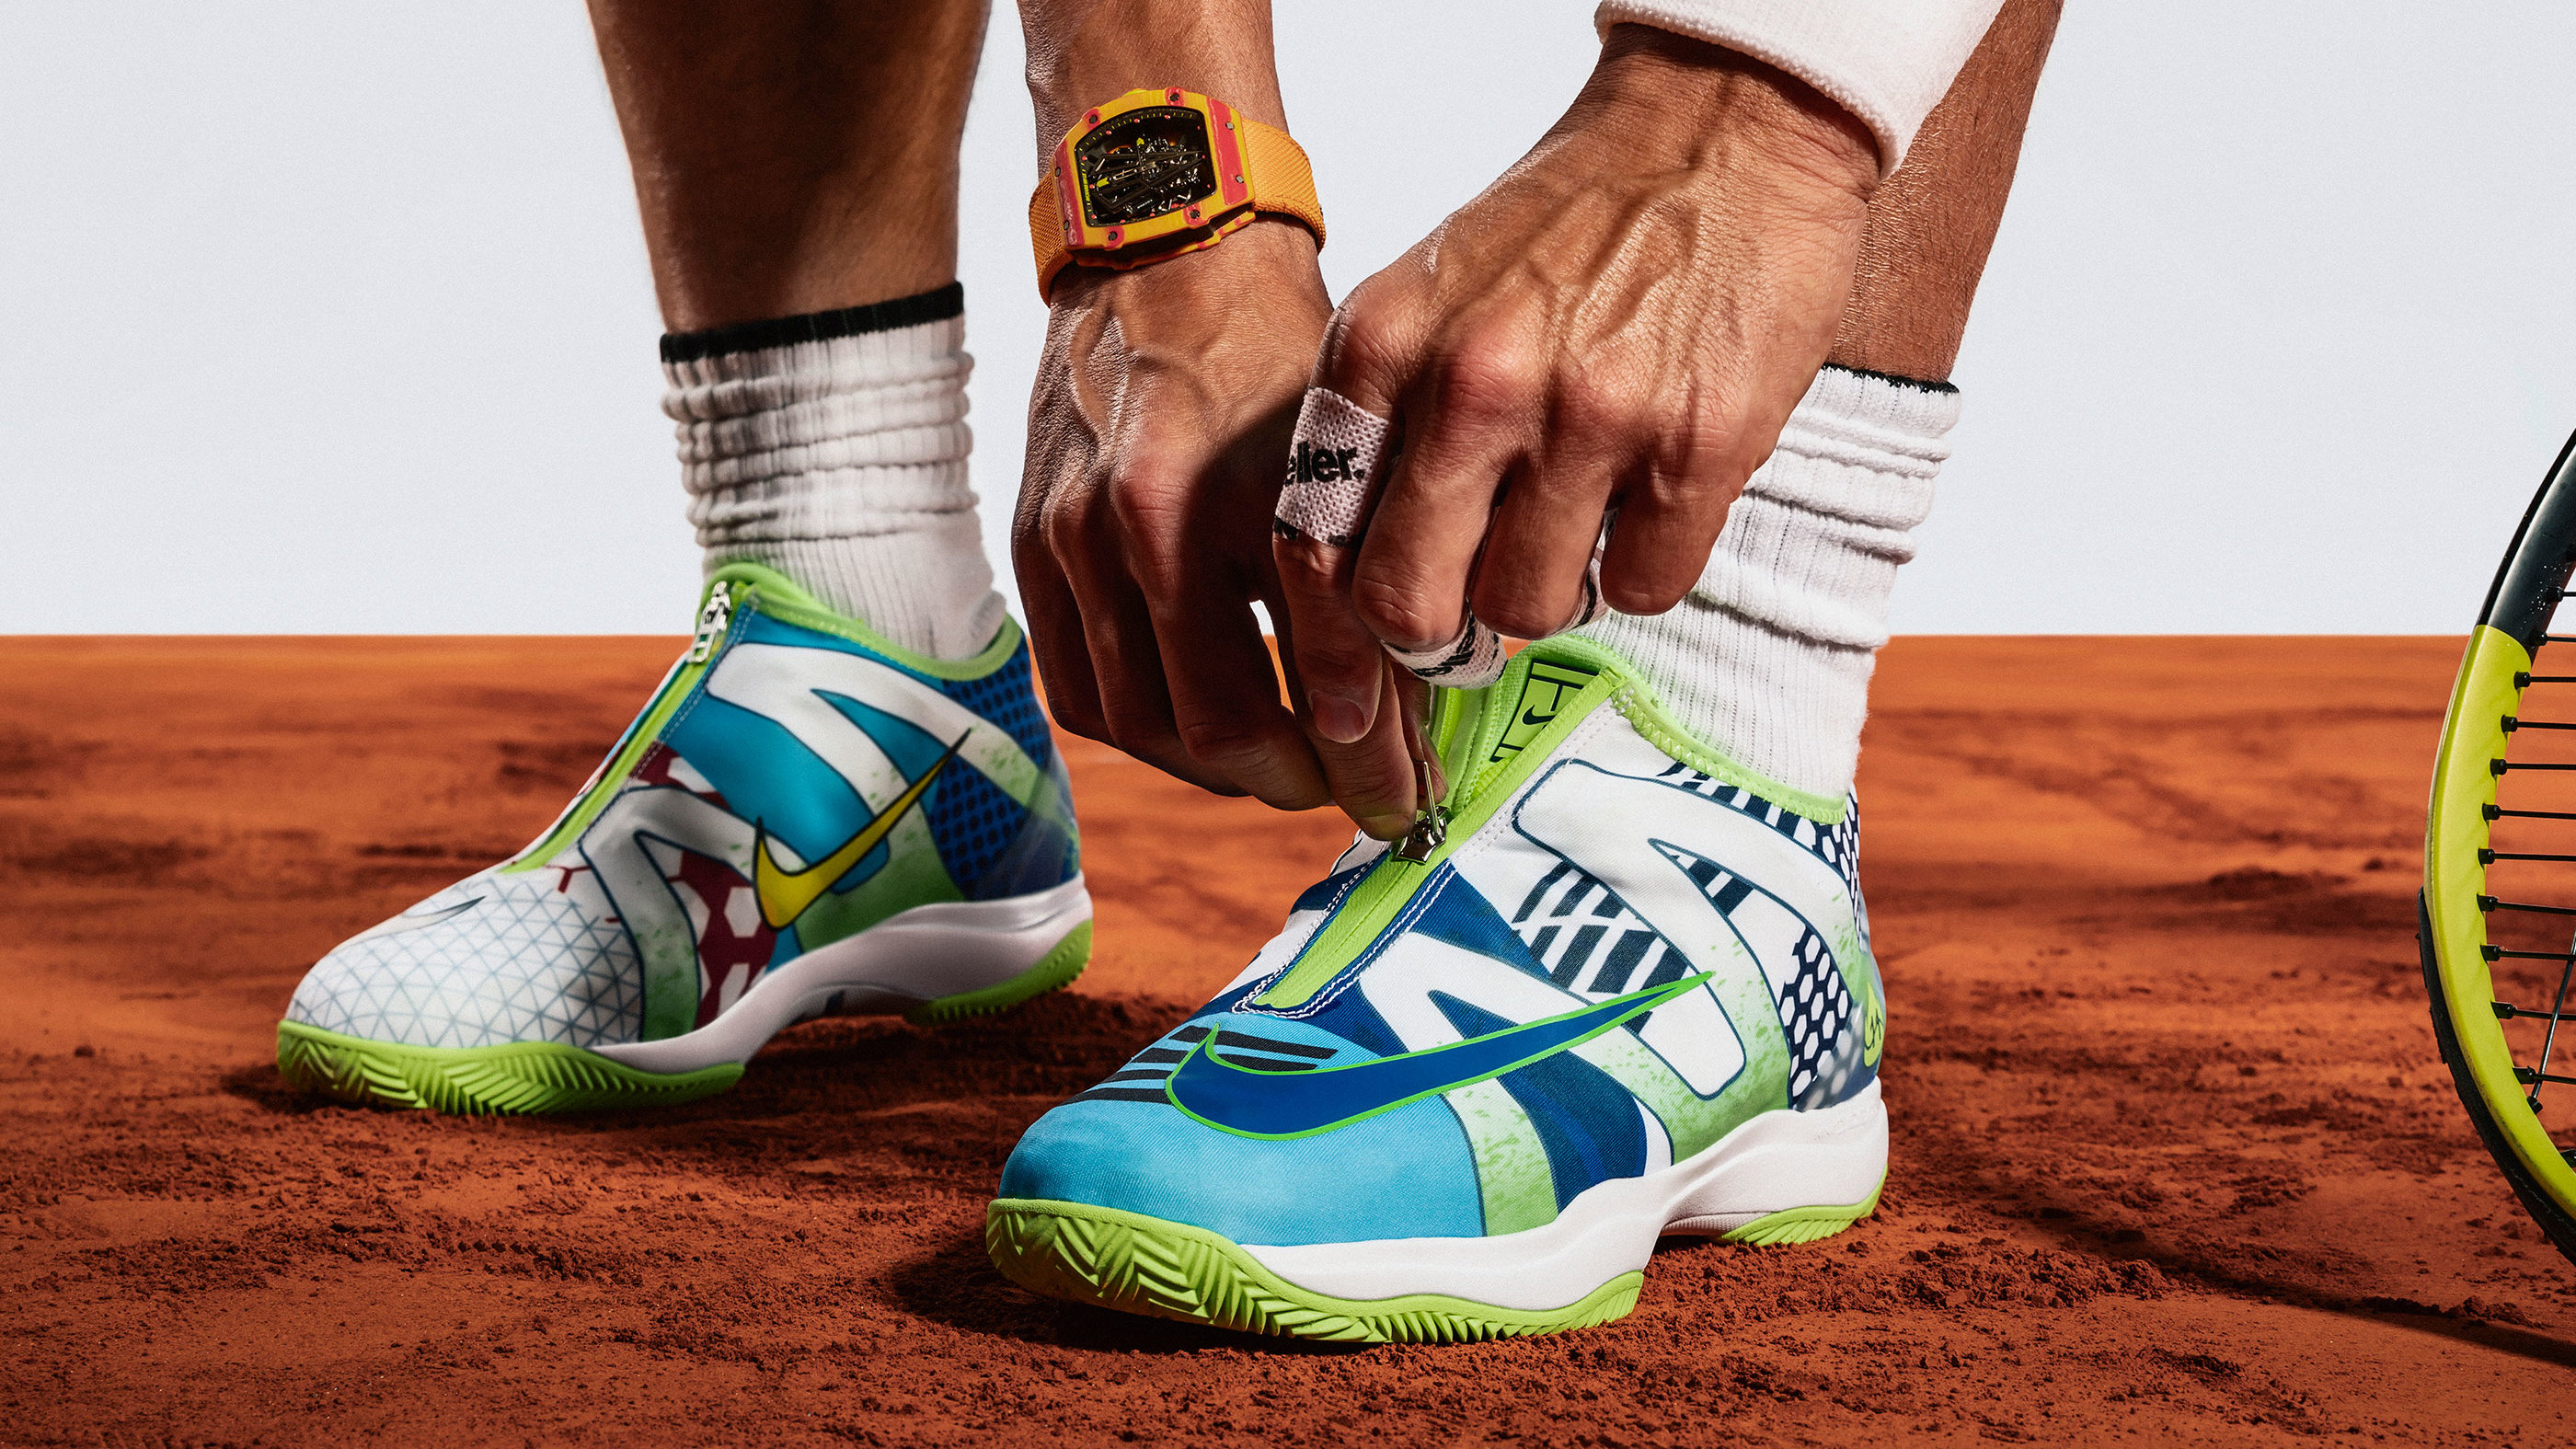 Rafael Nadal Is Getting His Own 'What The' Shoe